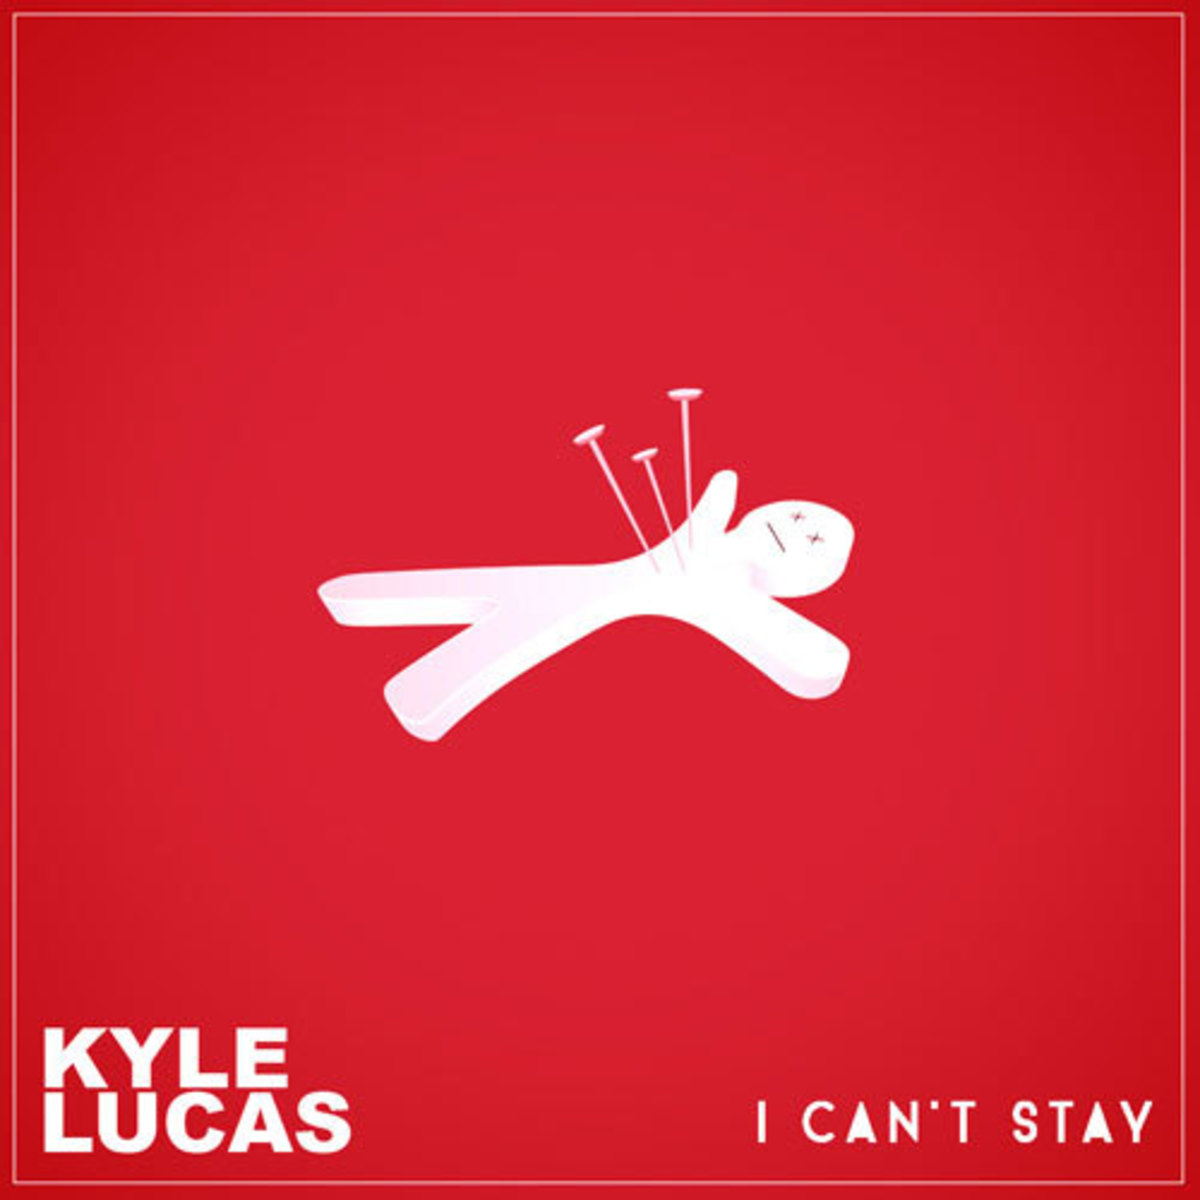 kyle-lucas-i-cant-stay.jpg